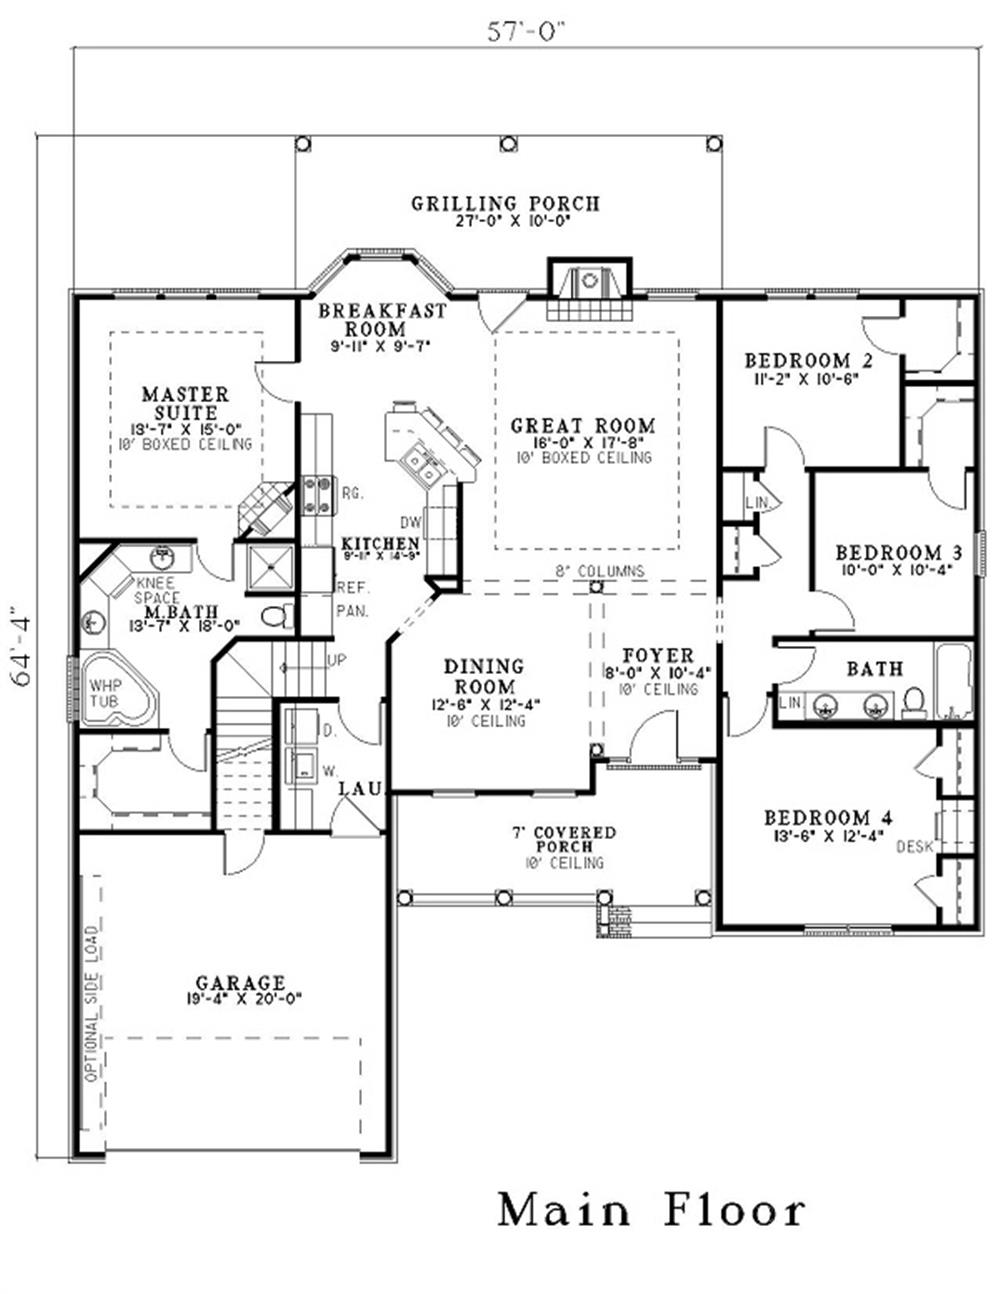 Large Images For House Plan 153 1440